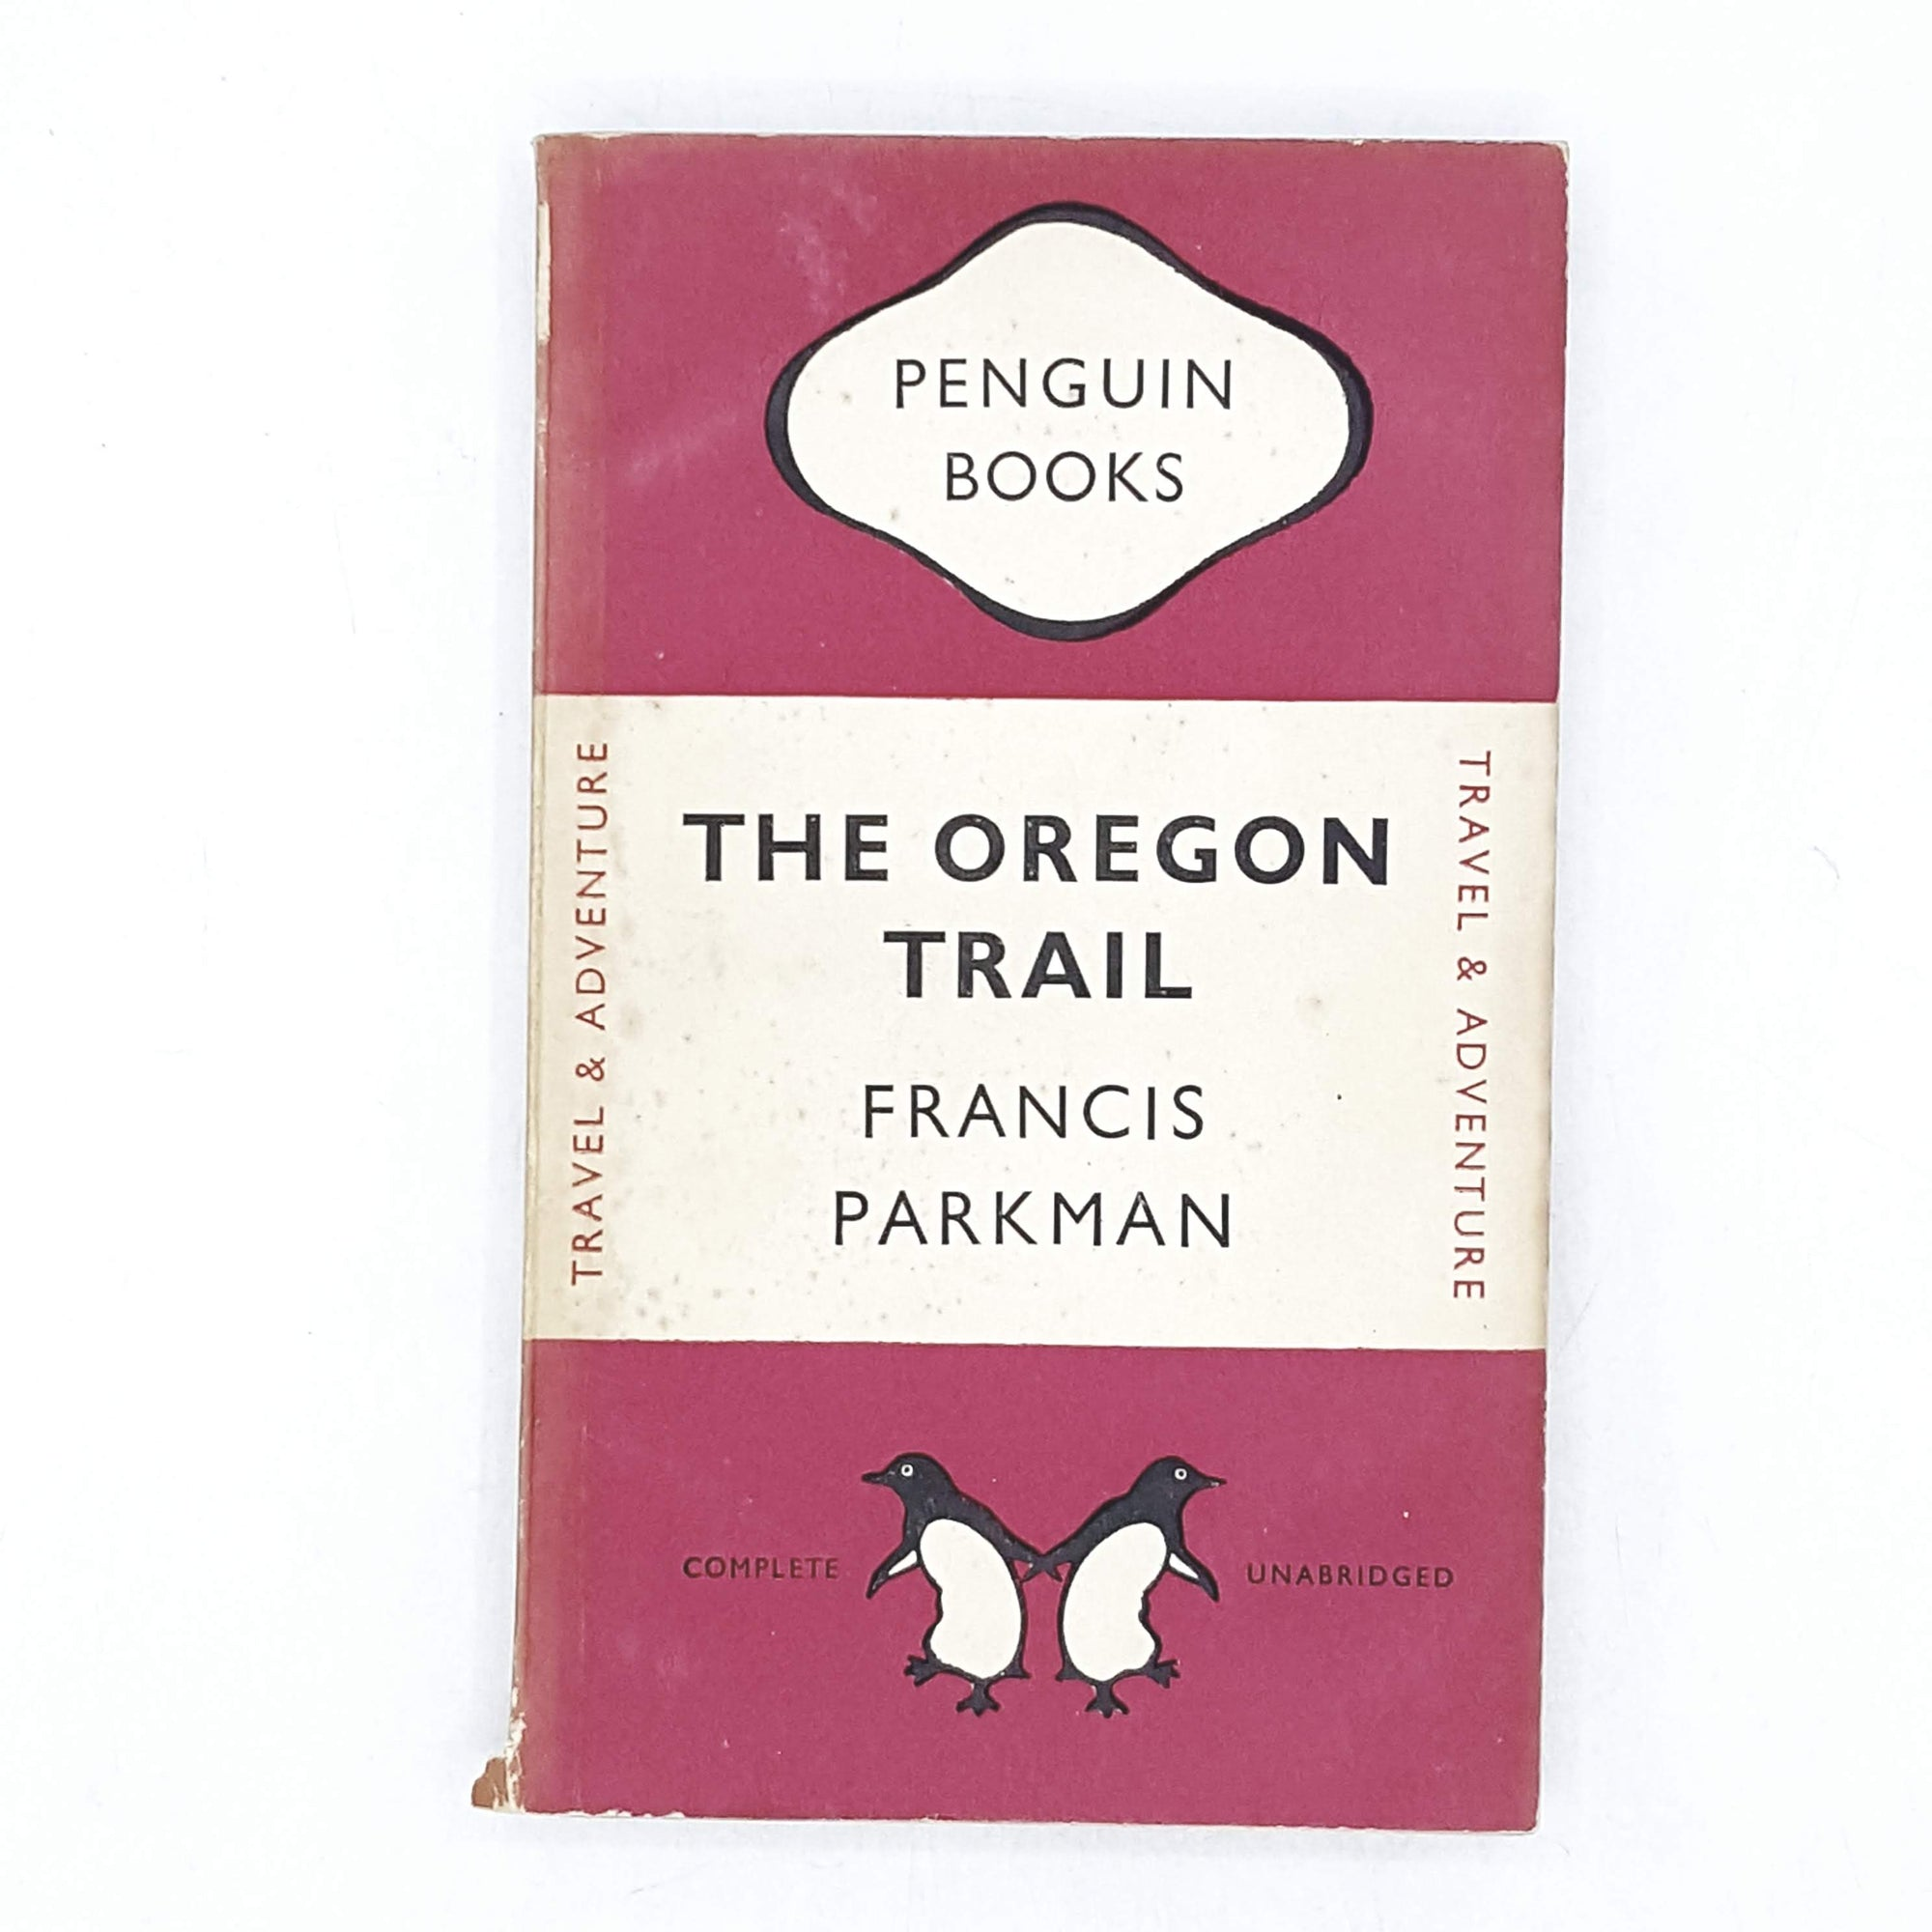 The Oregon Trail by Francis Parkman 1949